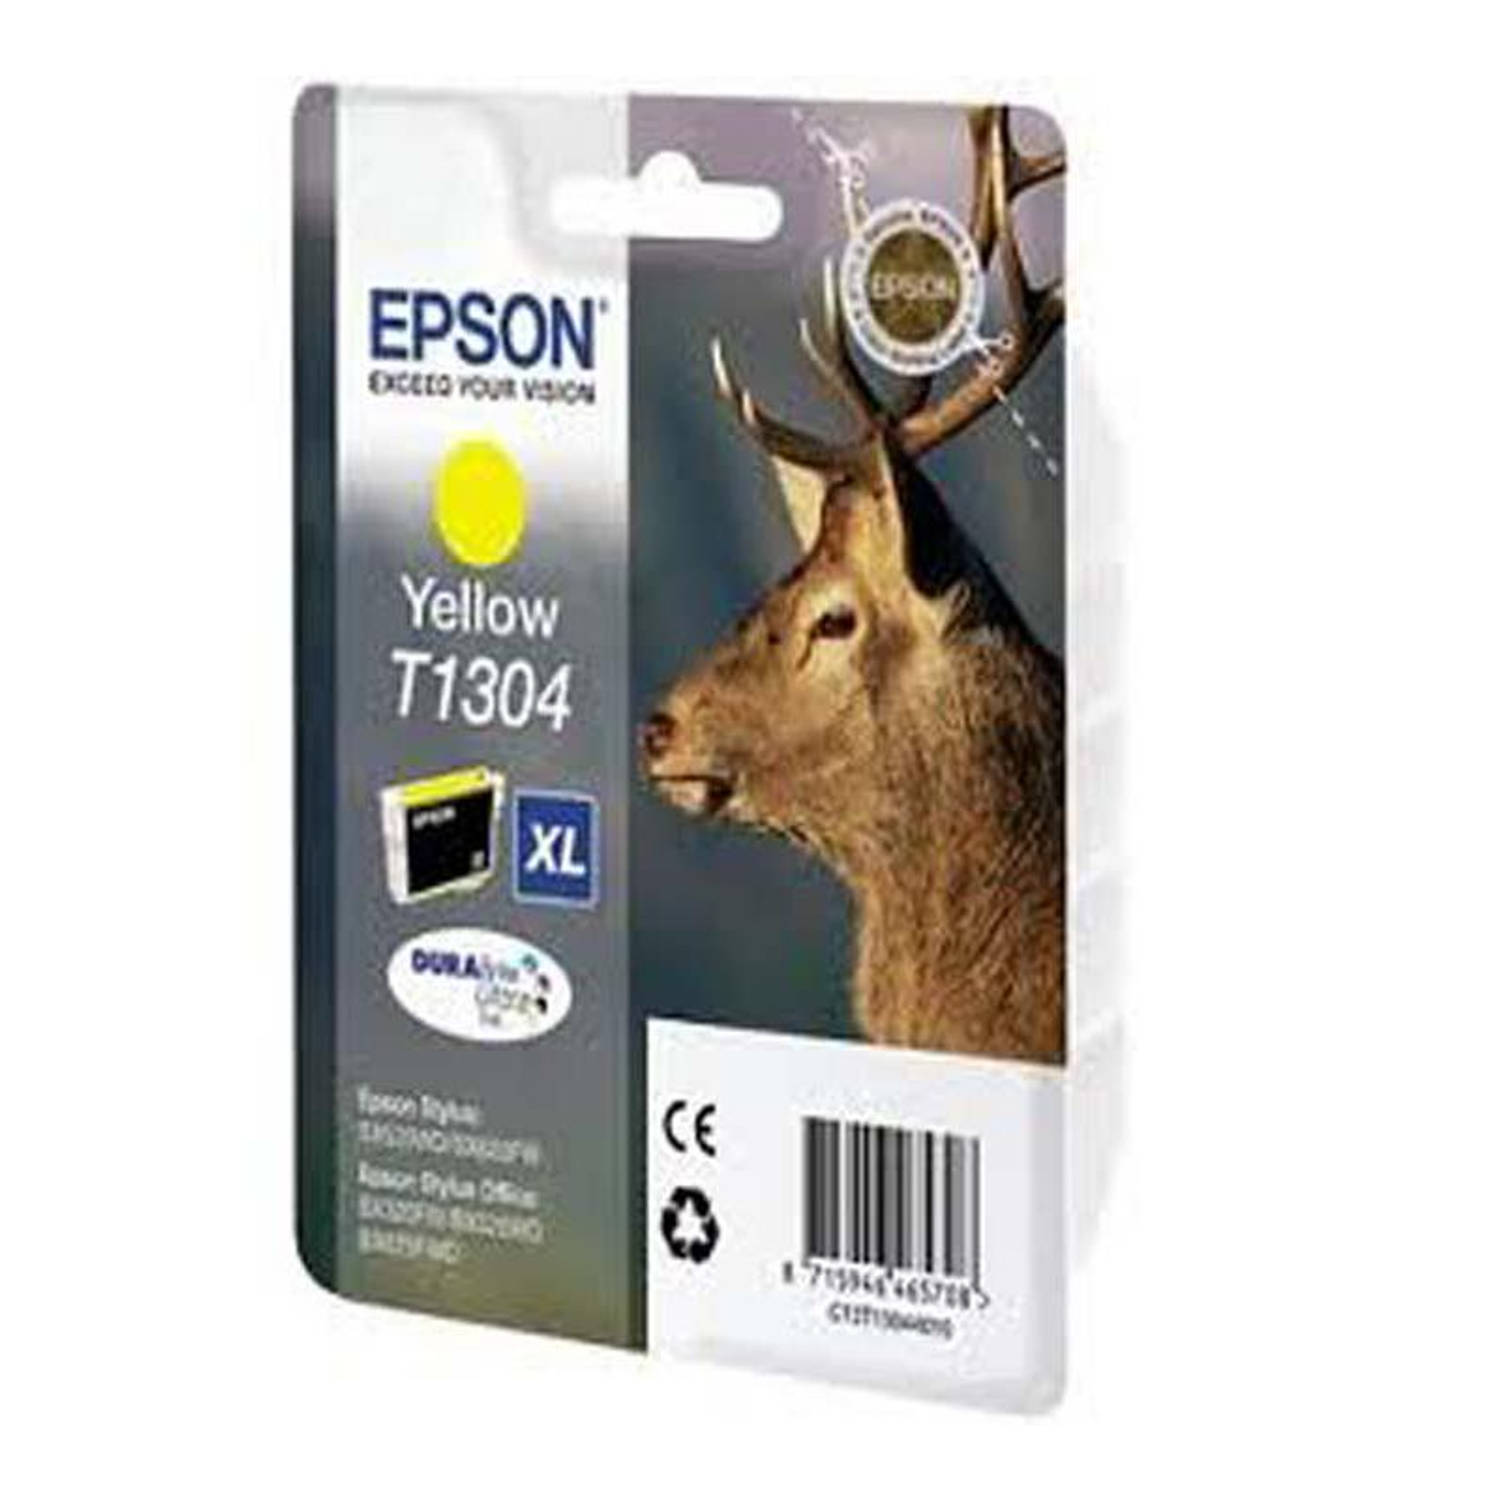 Epson T1304 geel Cartridge